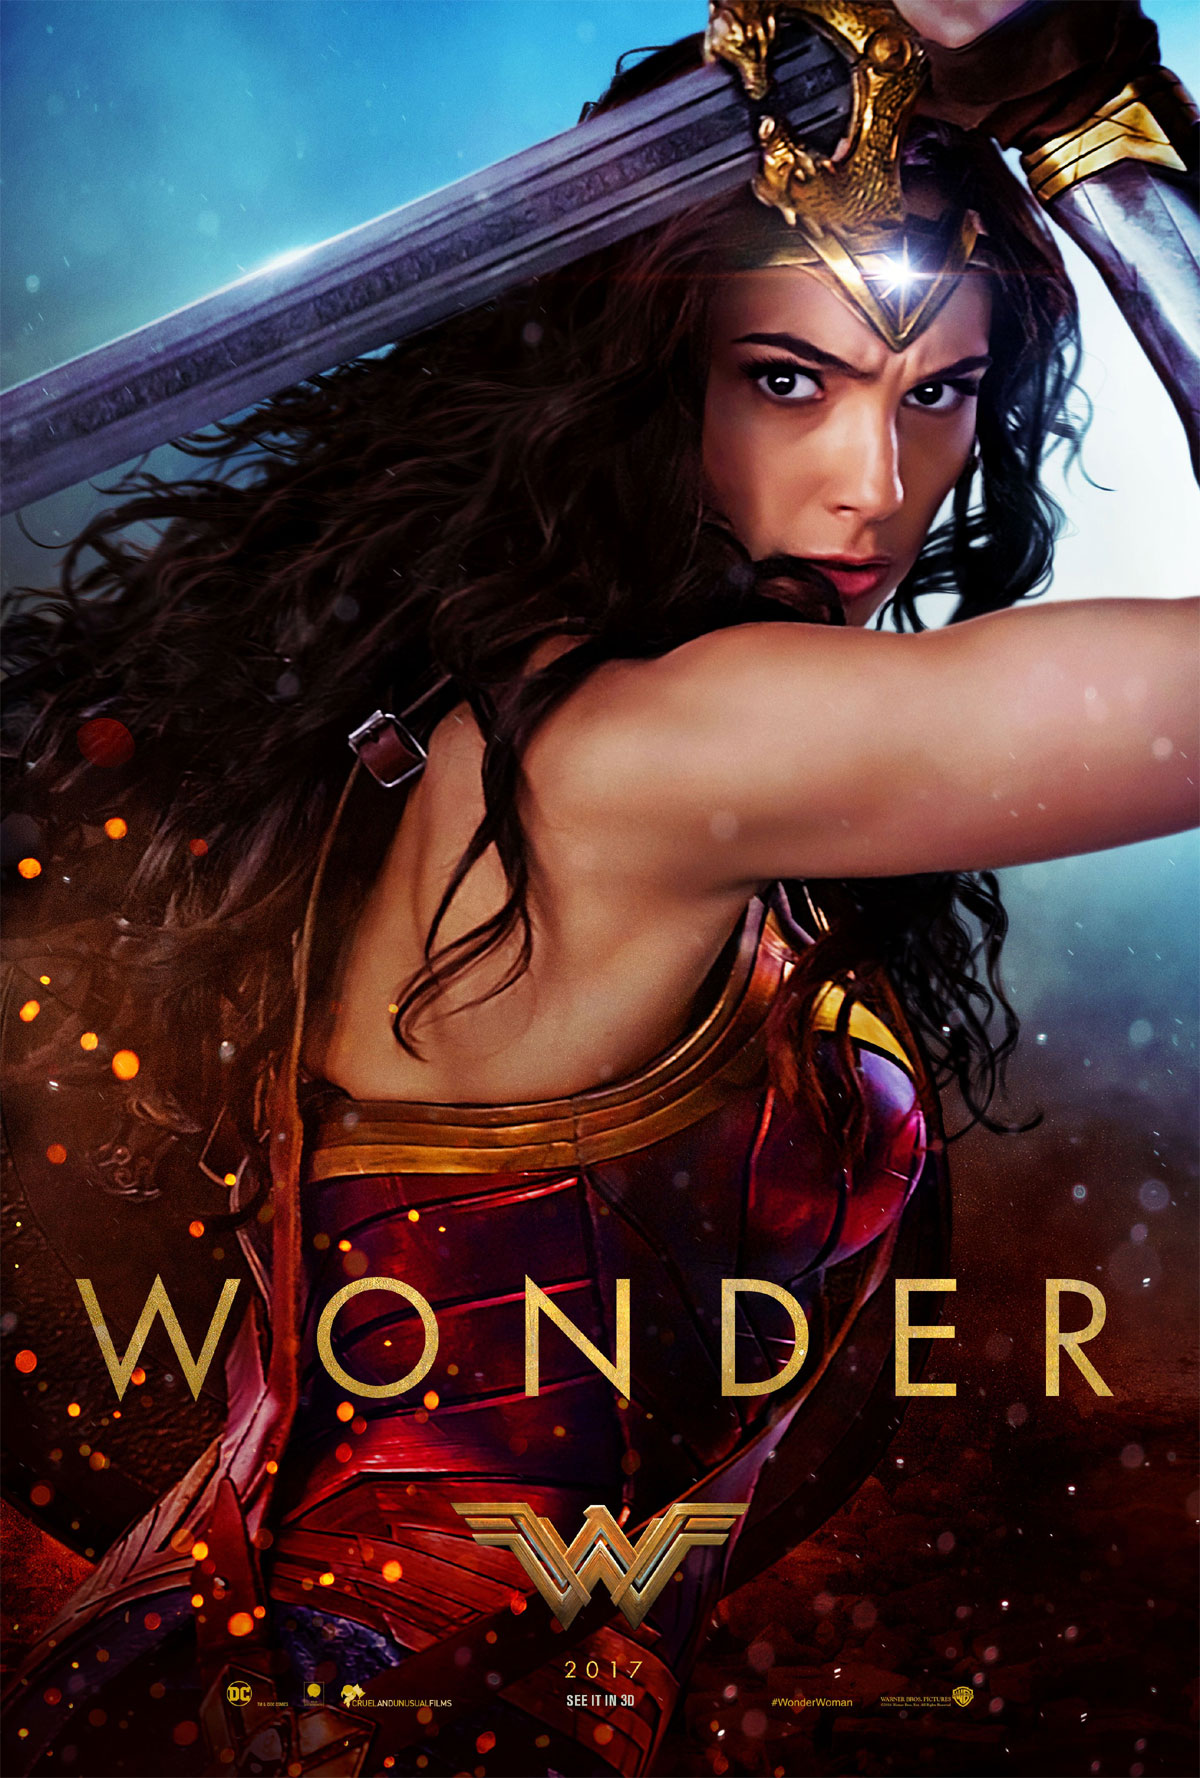 wonder-woman-filming-locations-poster-2